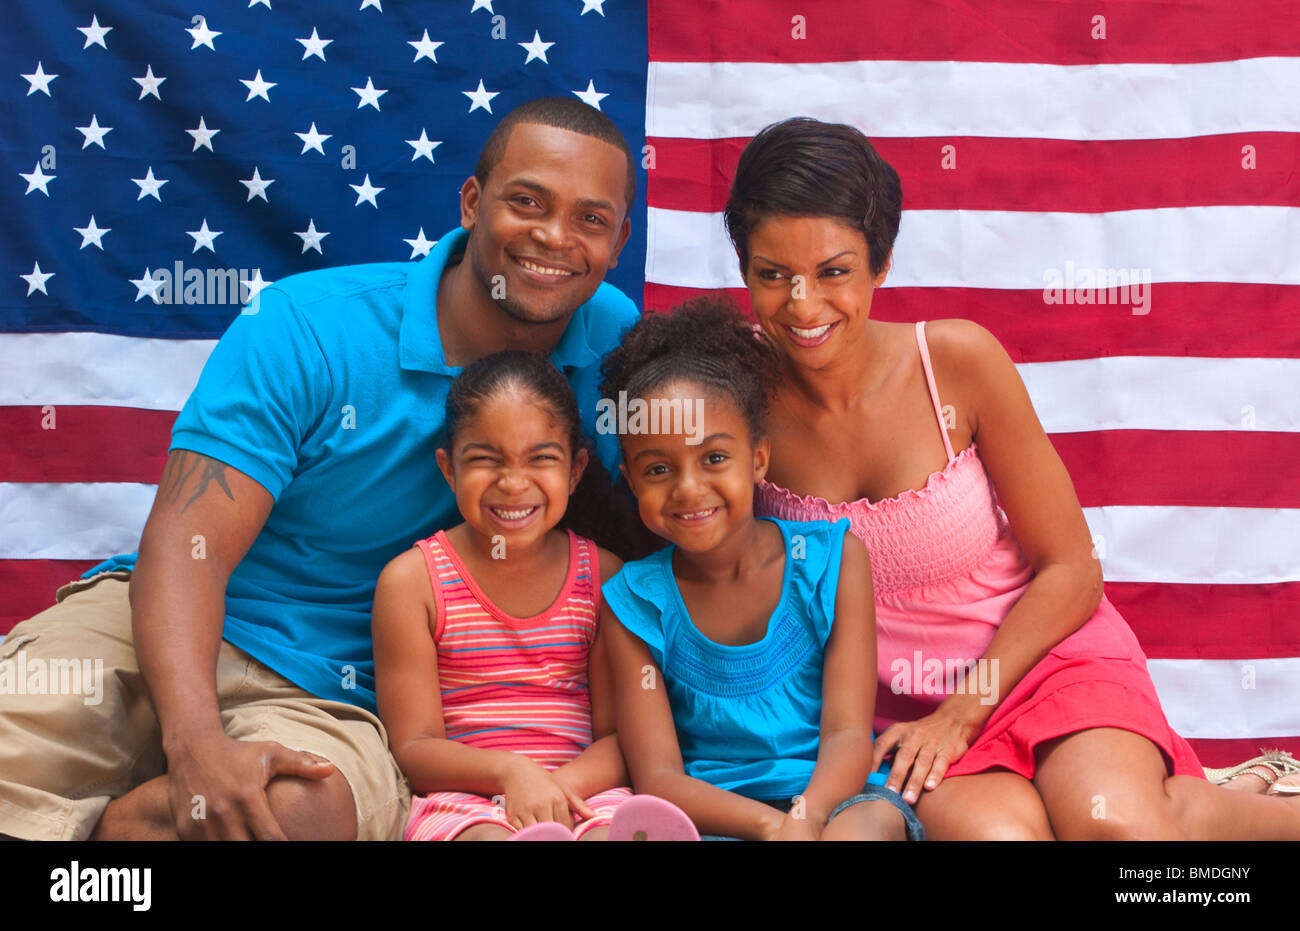 Black African American Family Loving The USA With Flag And Colors Of Holiday Celebration